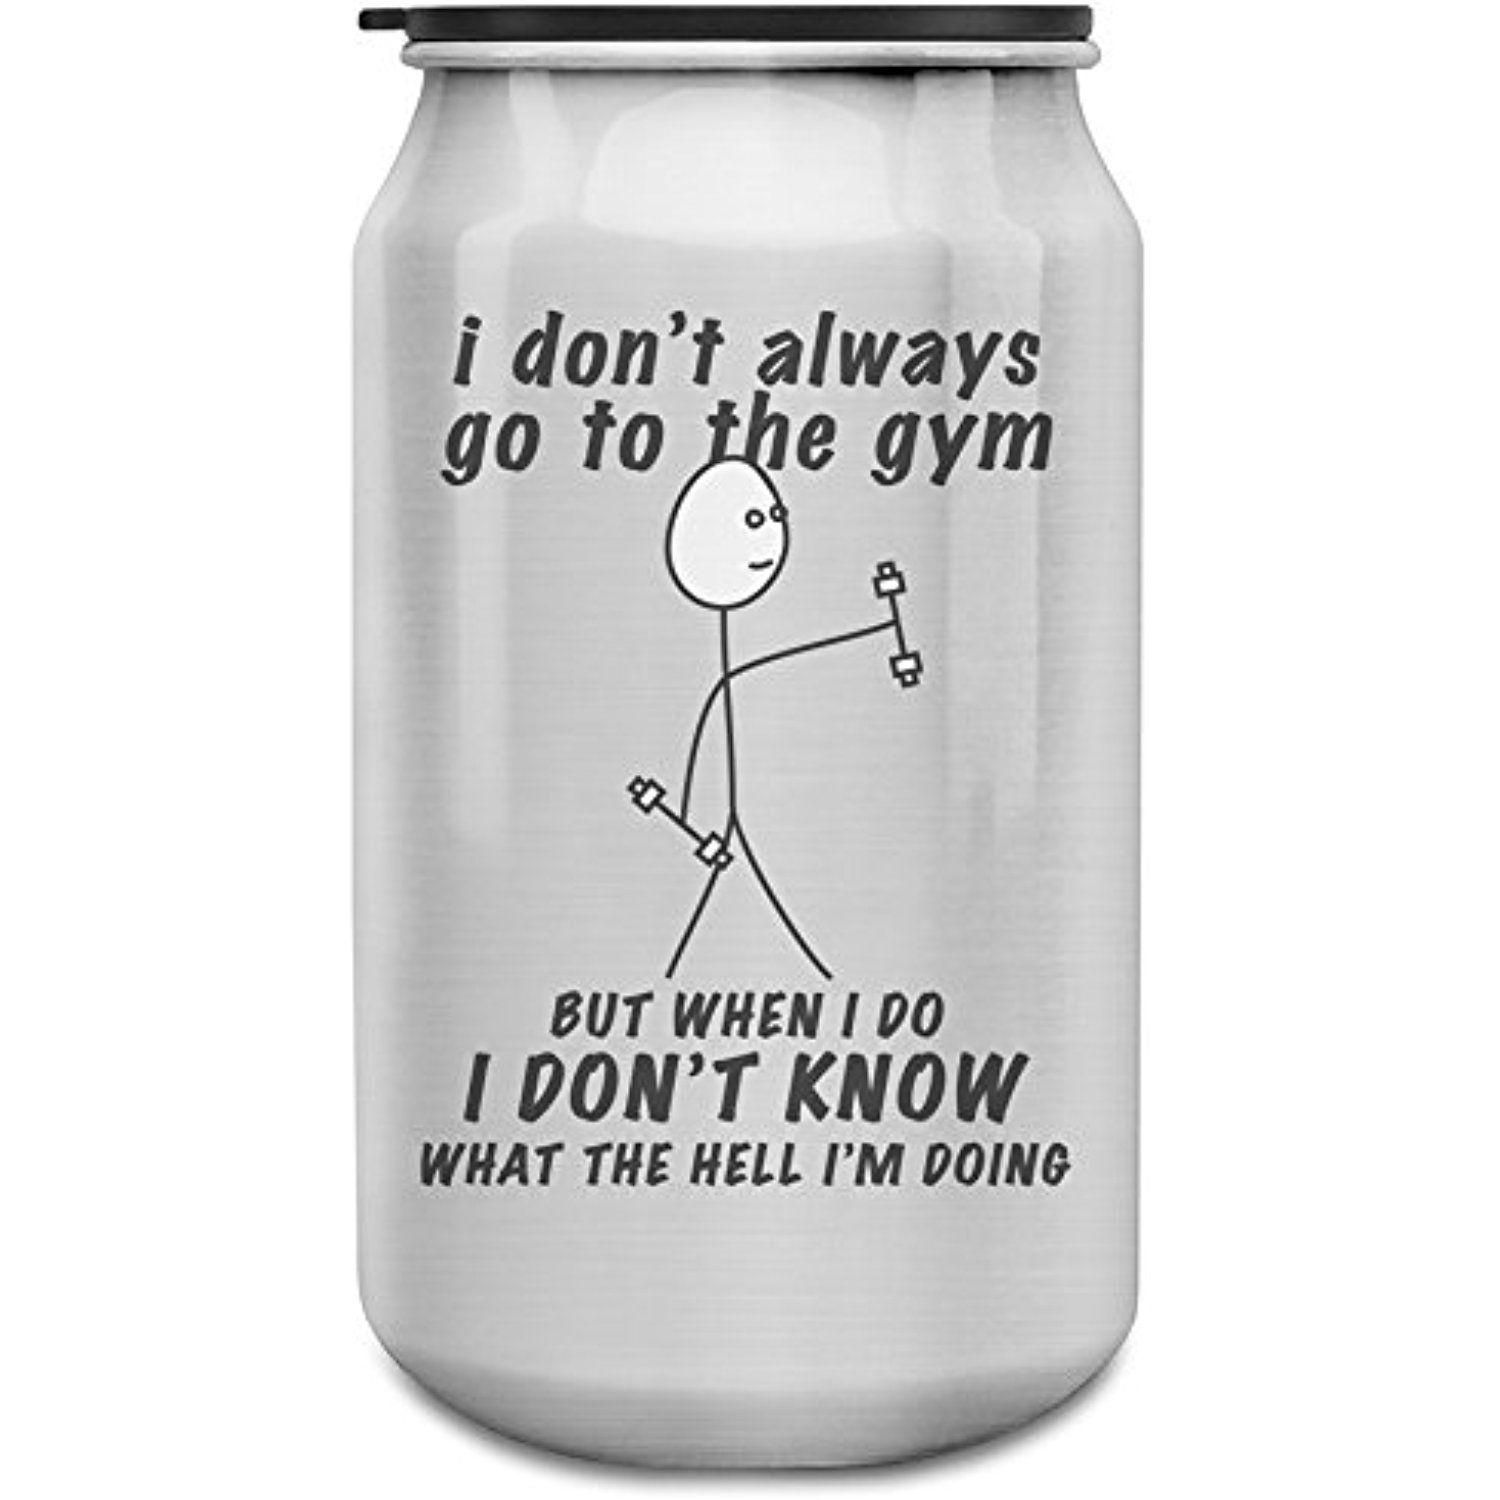 I don't always go to the gym 350ml Aluminium Cans Bottle